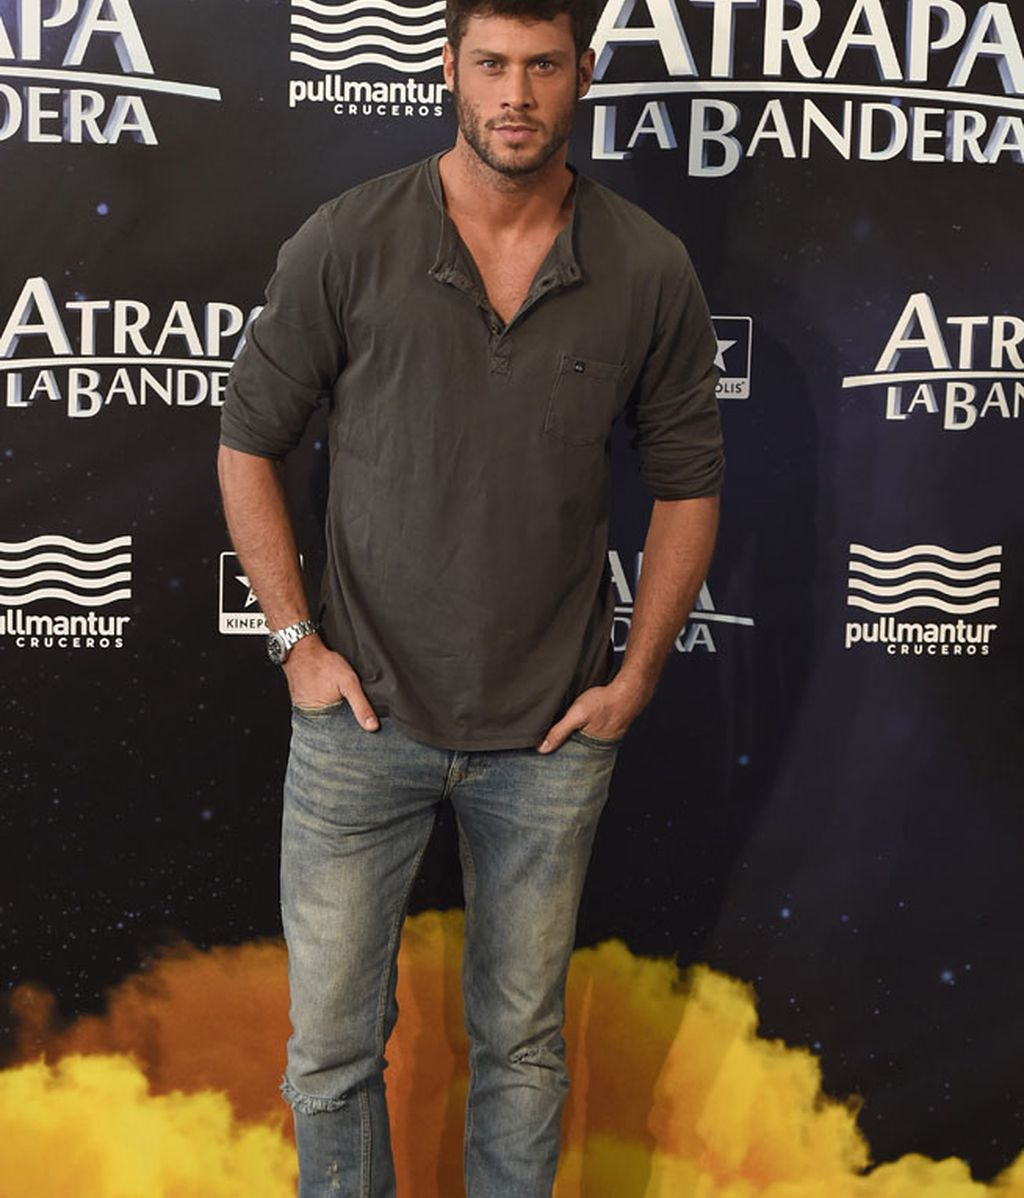 El actor José Lamuño, con look casual